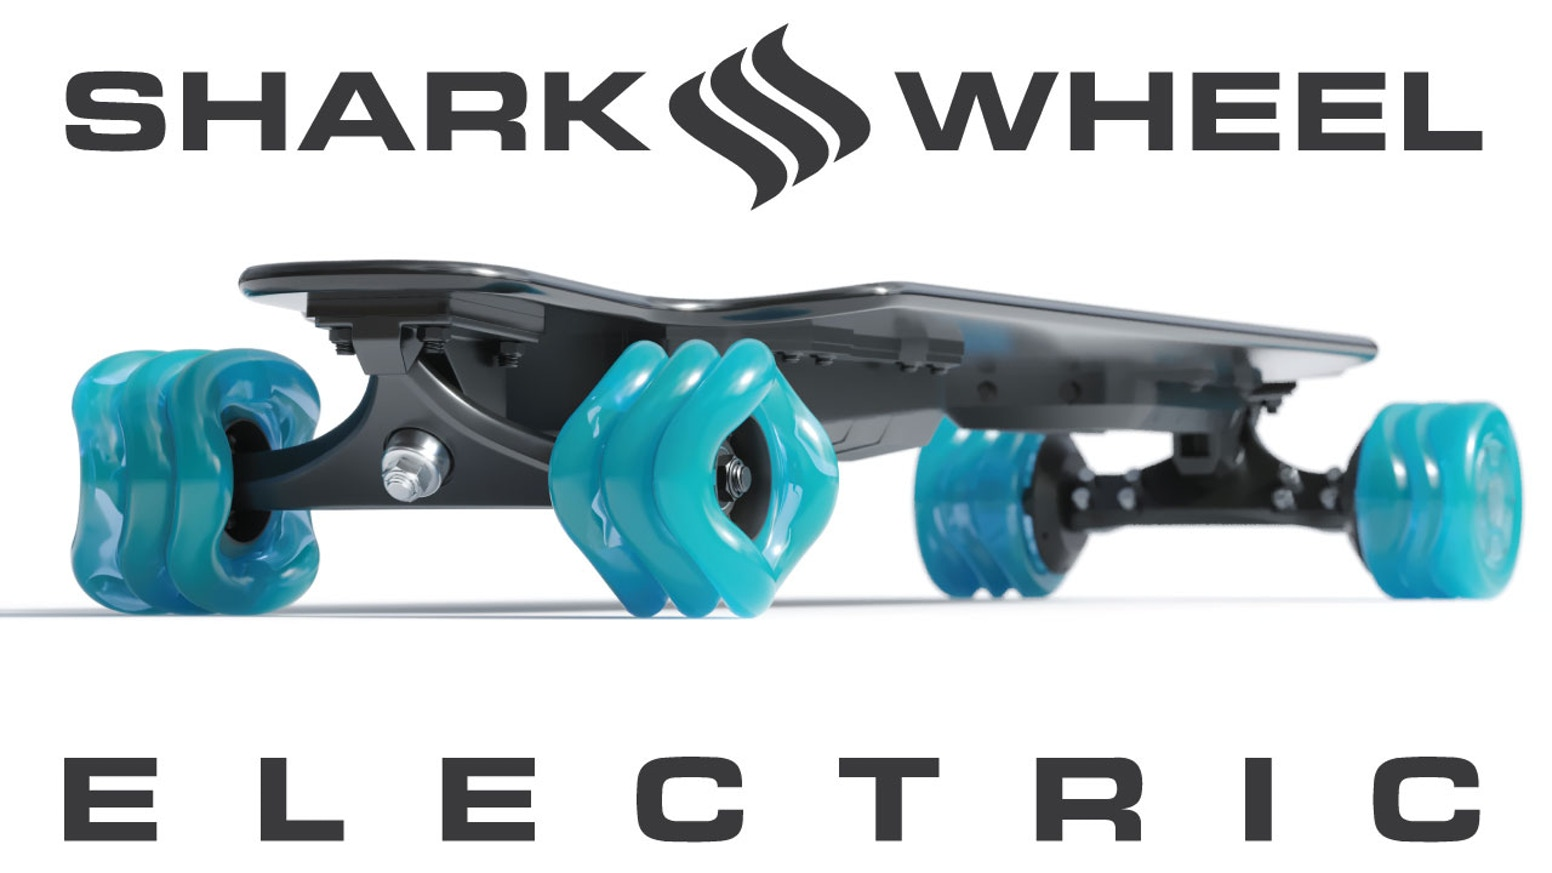 Shark Electric THIN with Black Wheels (11 mile range, in stock - 12 month payment plan available)